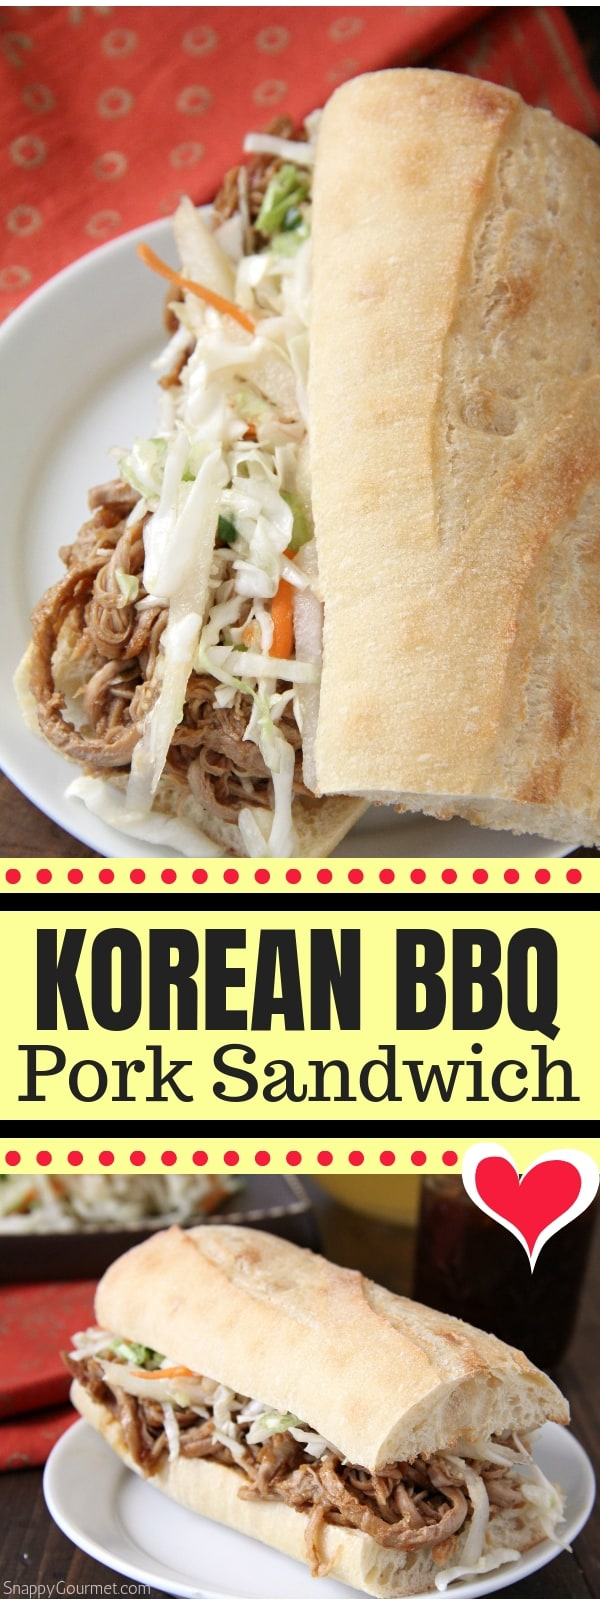 Korean BBQ Pork Sandwich collage